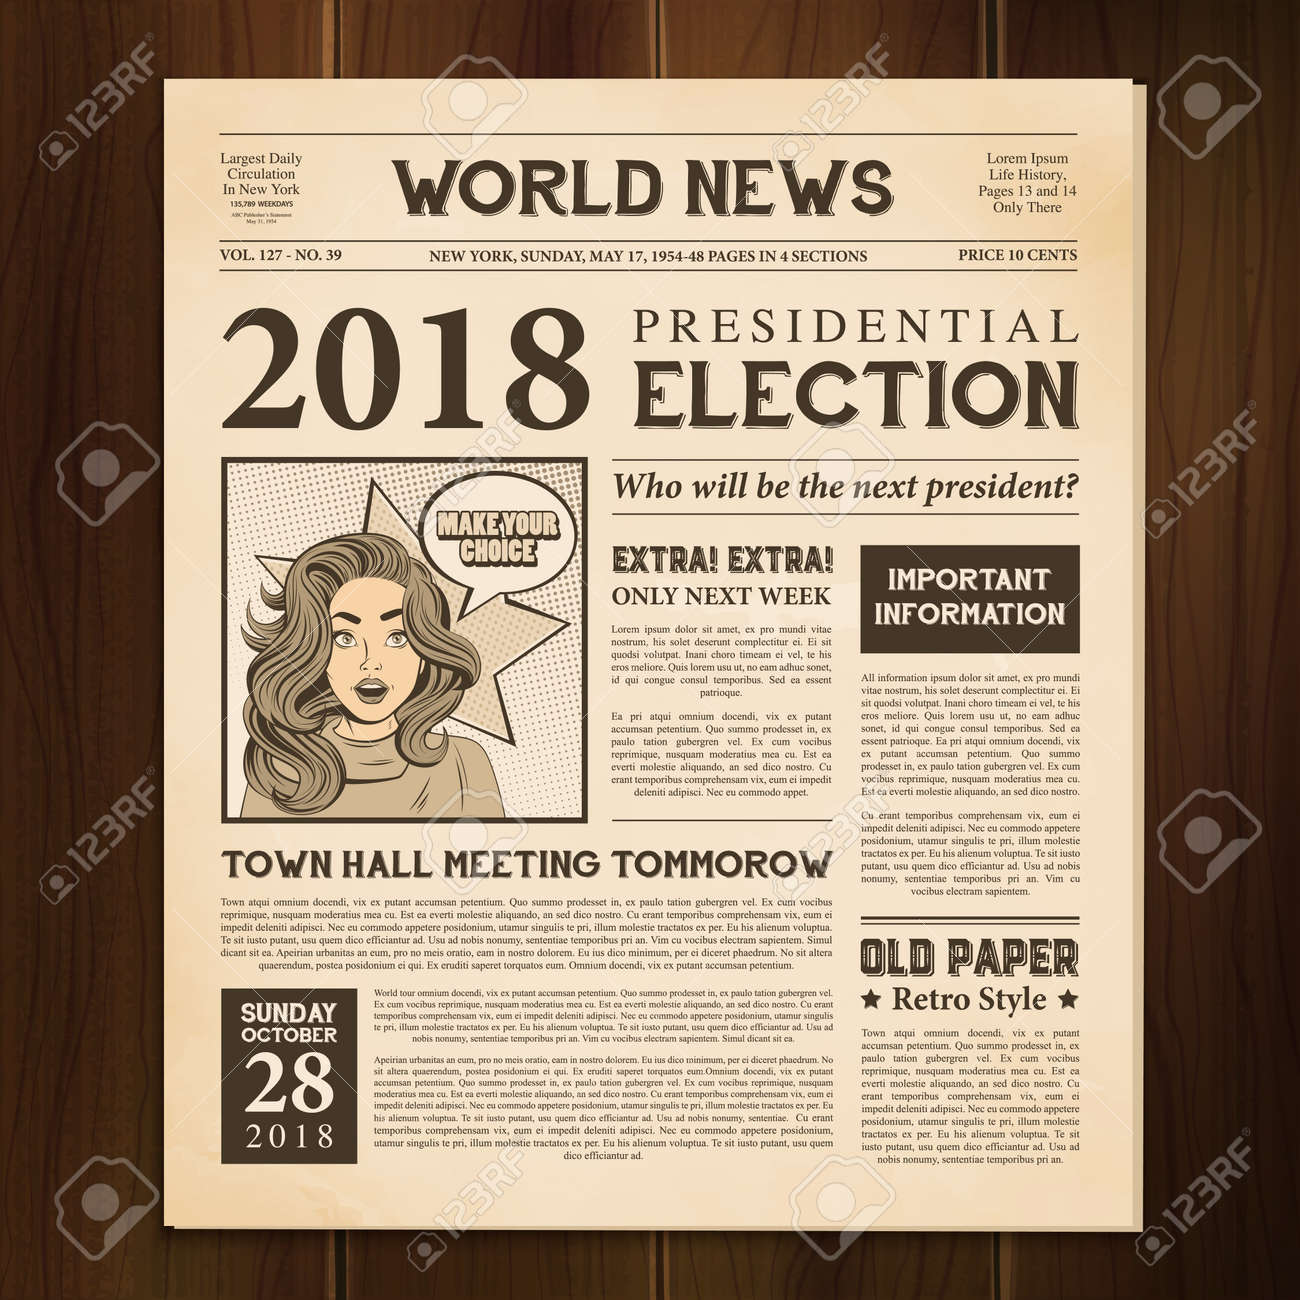 Newspaper page 2018 presidential election world news article realistic vintage style against dark wood background vector illustration - 166134789